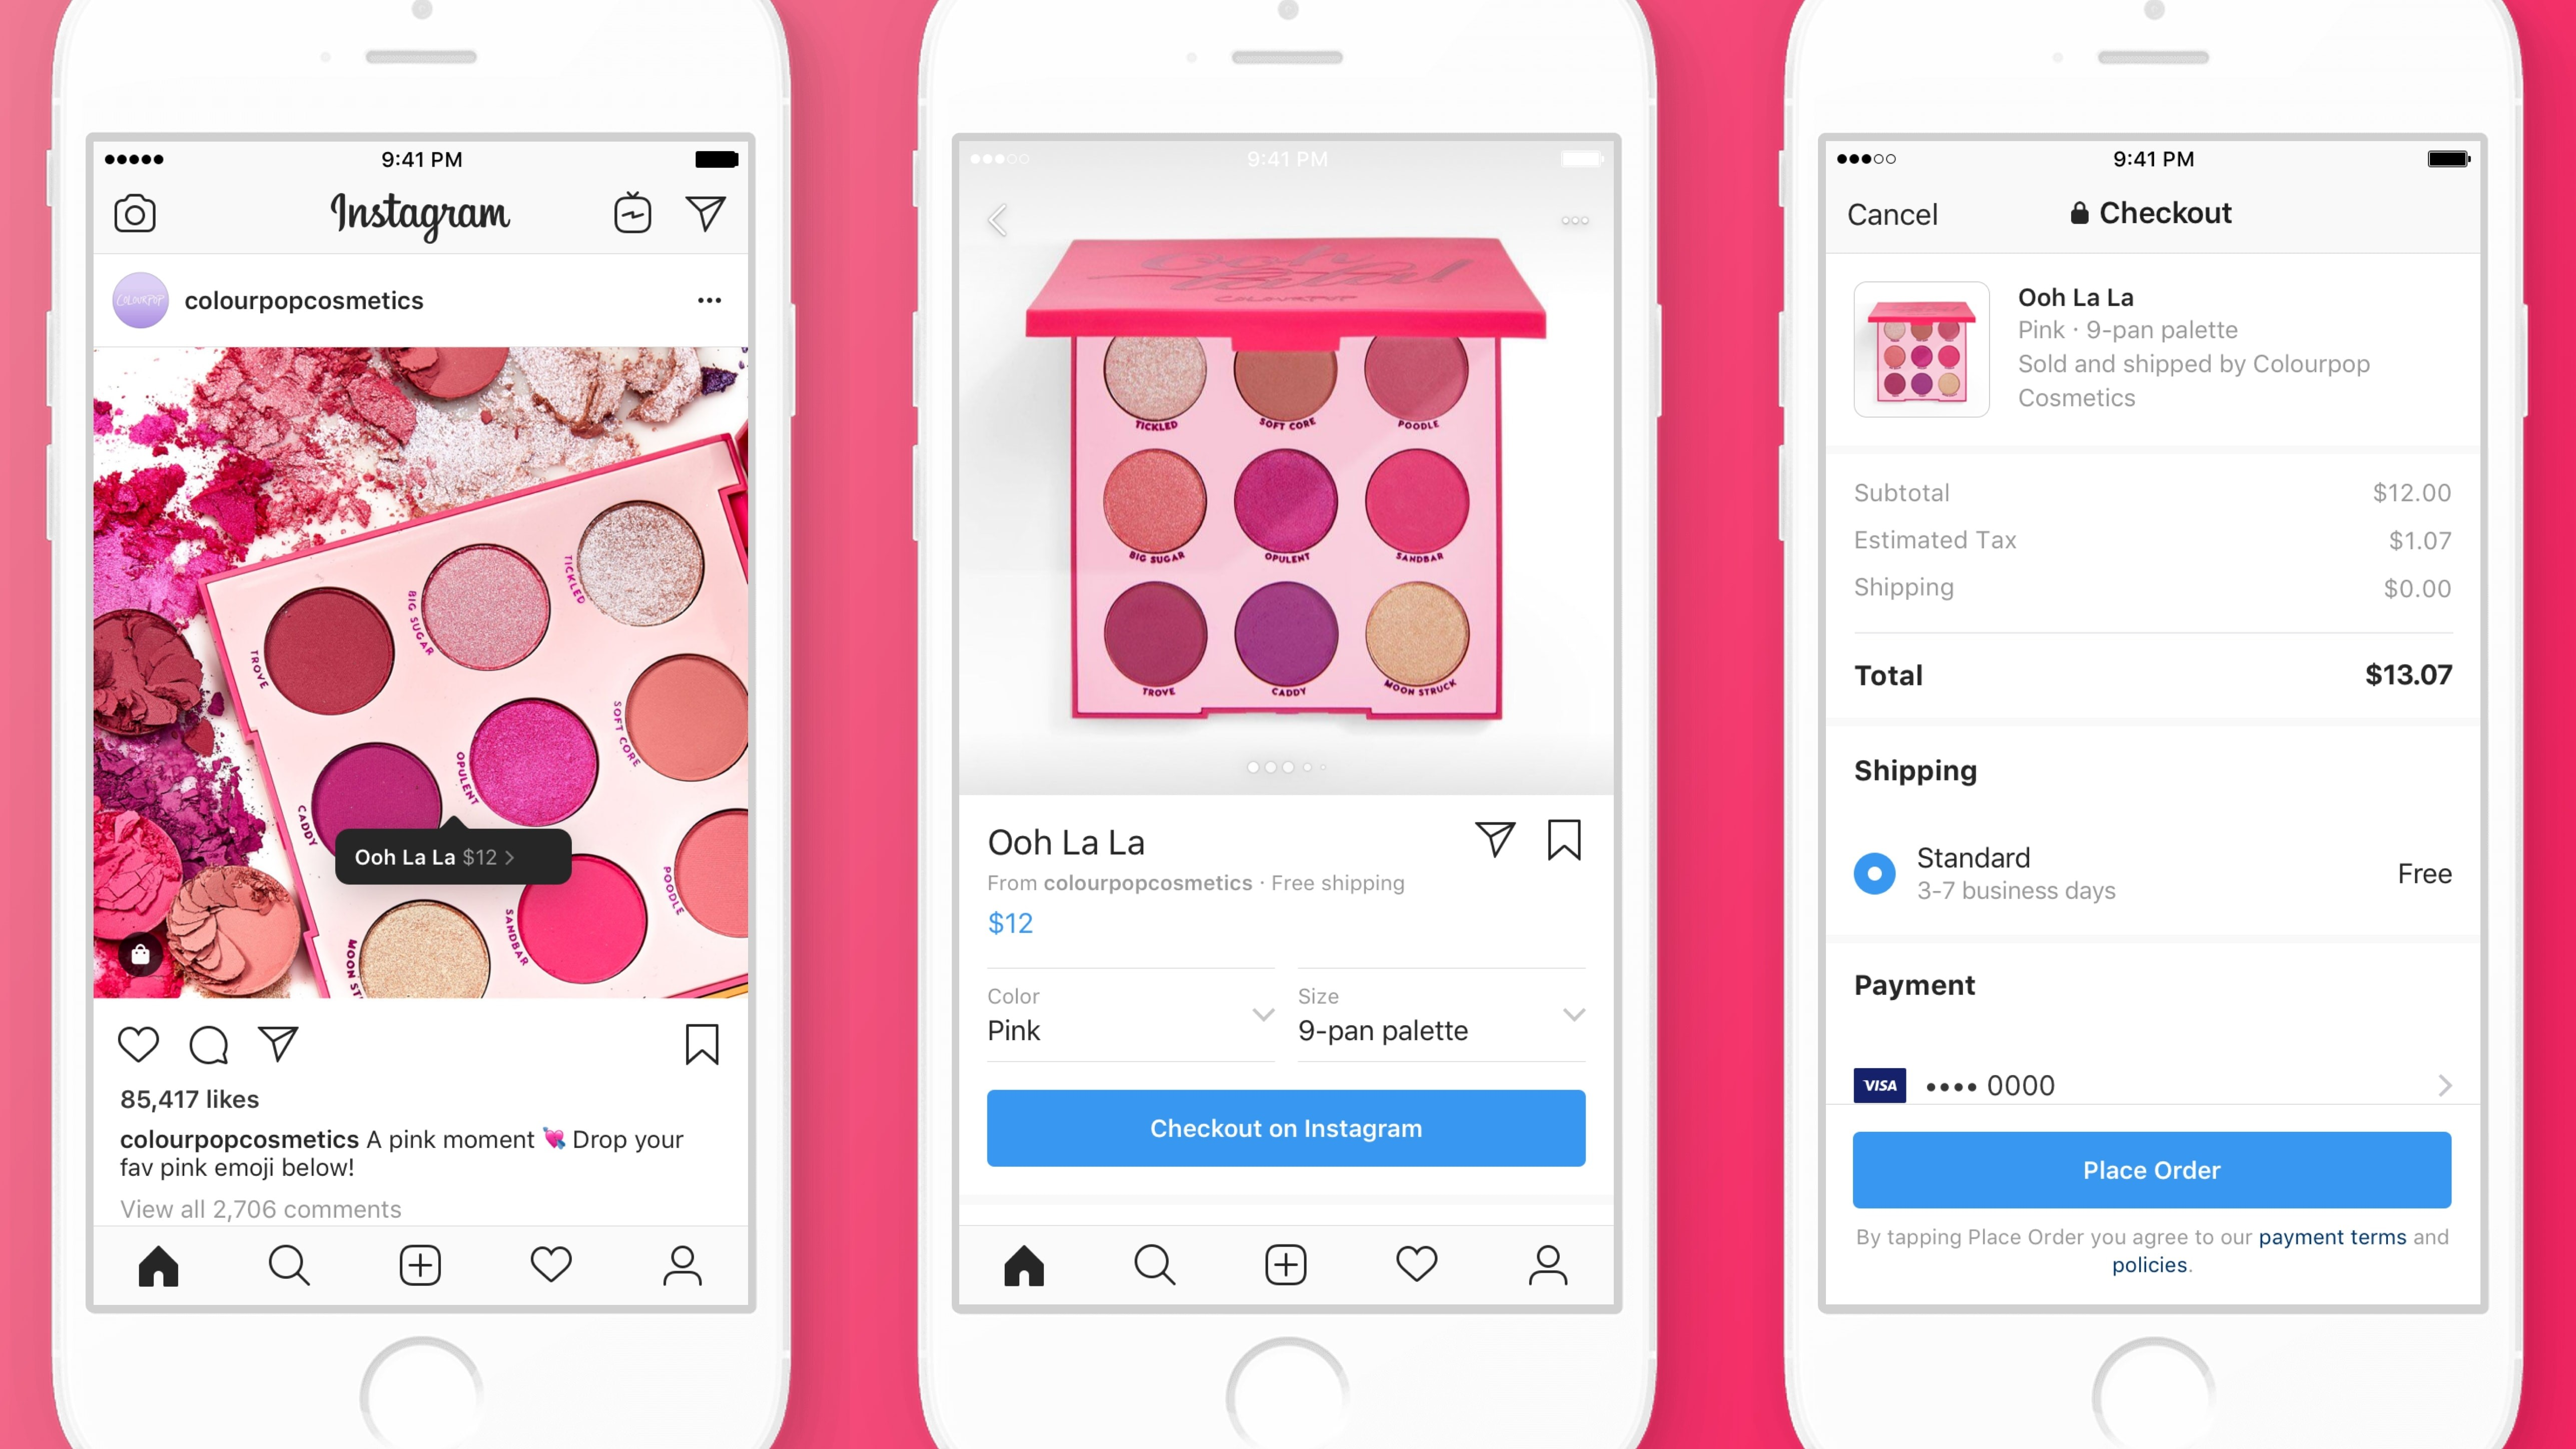 Instagram Introduces Checkout to Leverage Social Commerce